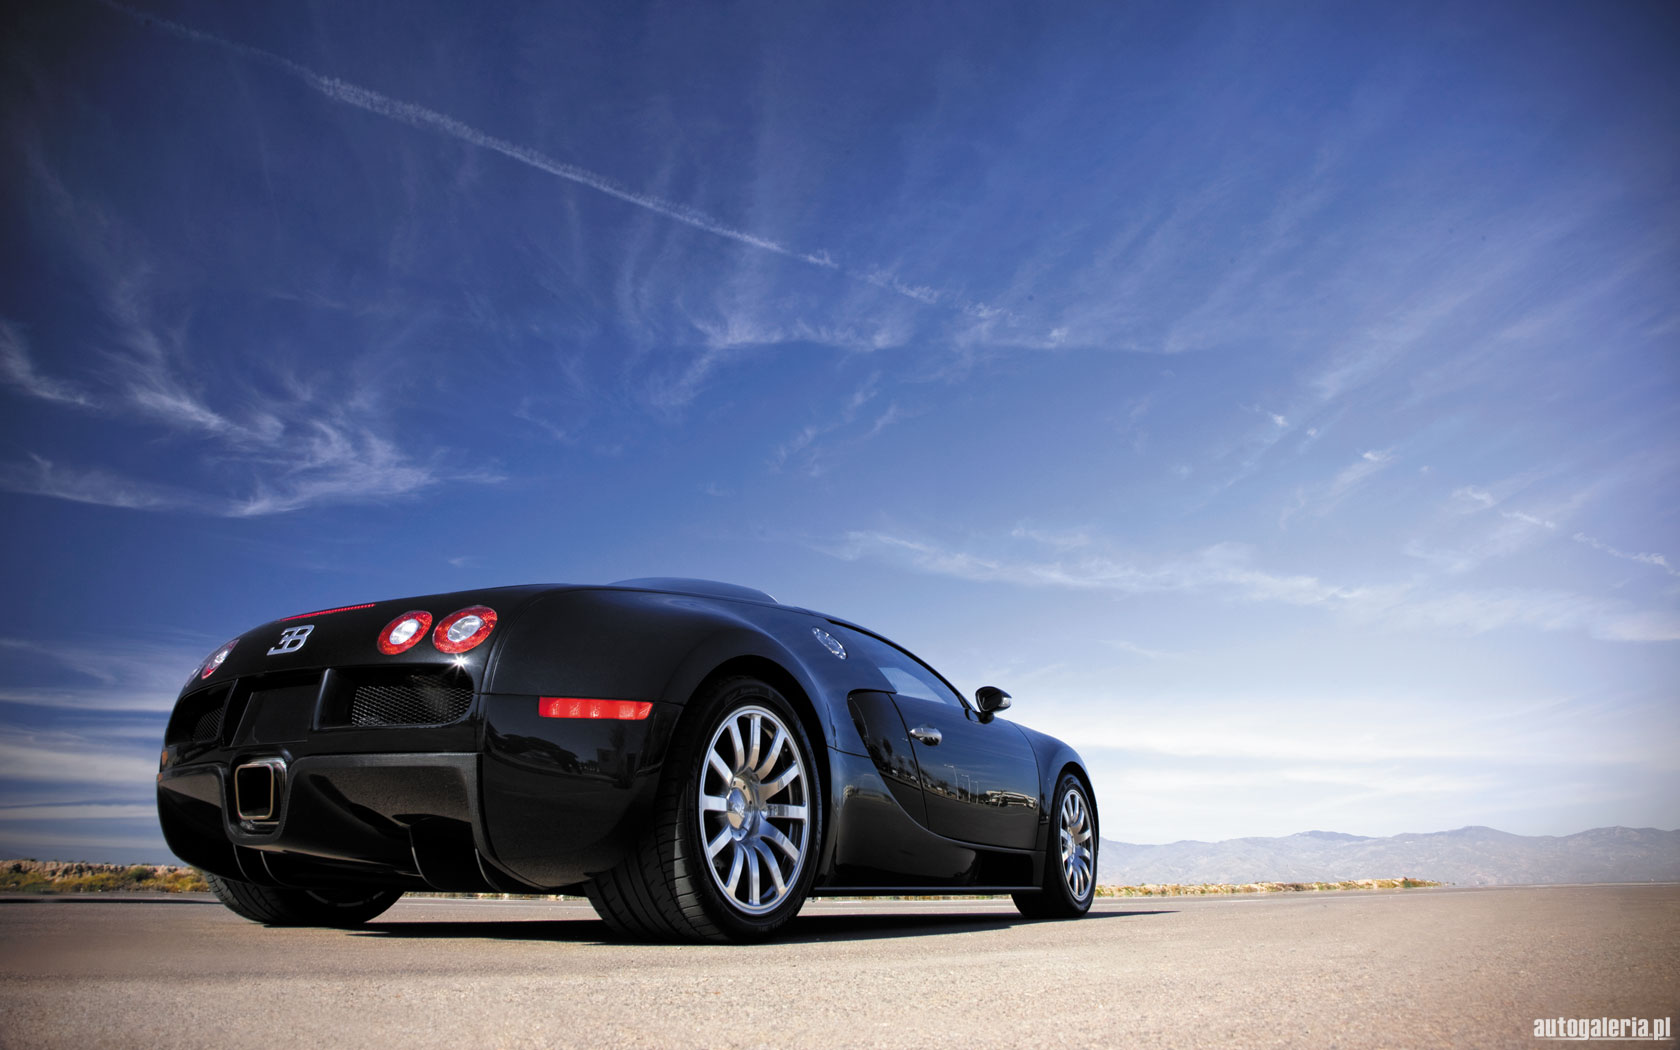 Car Wallpaper Wallpapers For Free Download About Wallpapers Ultra Hd